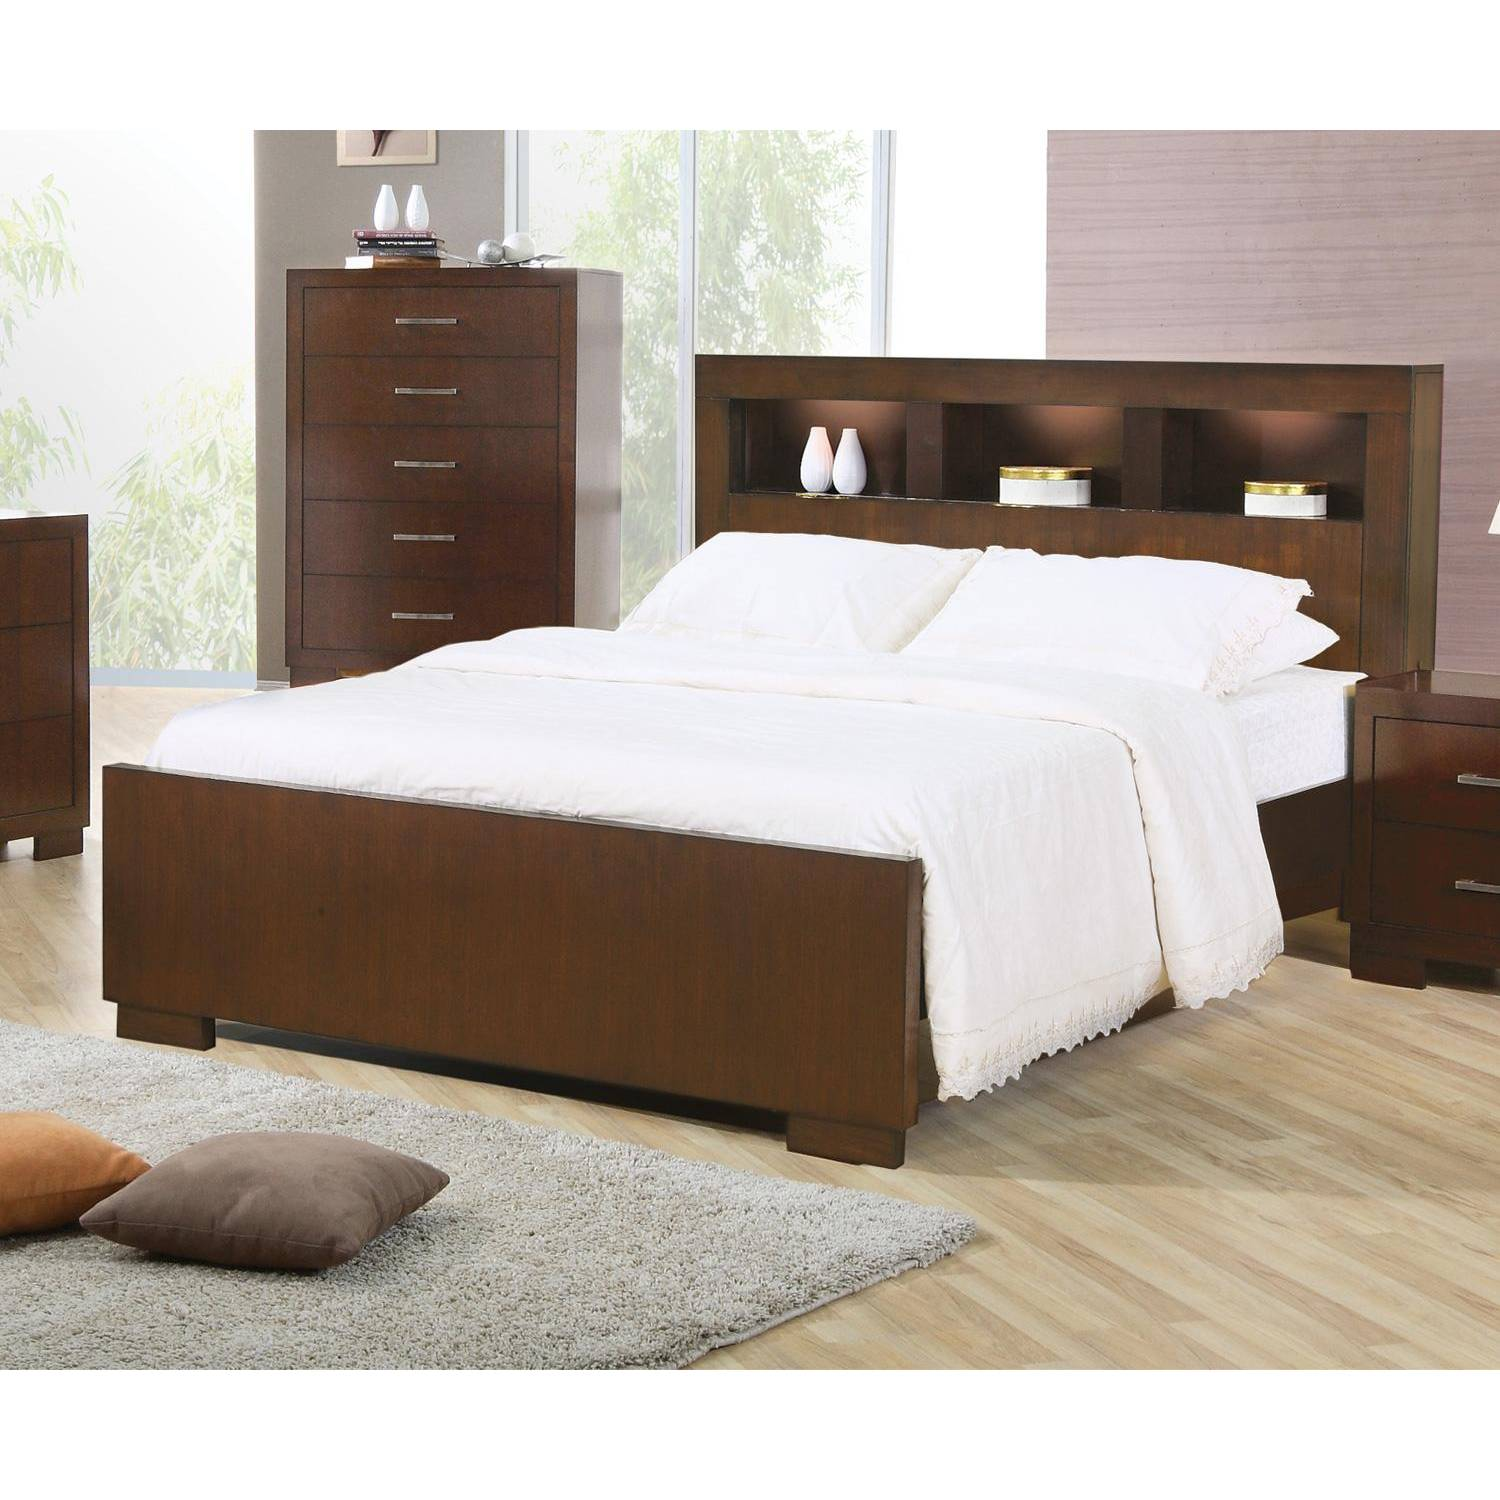 Jessica king contemporary bed with storage headboard and Headboard with pictures